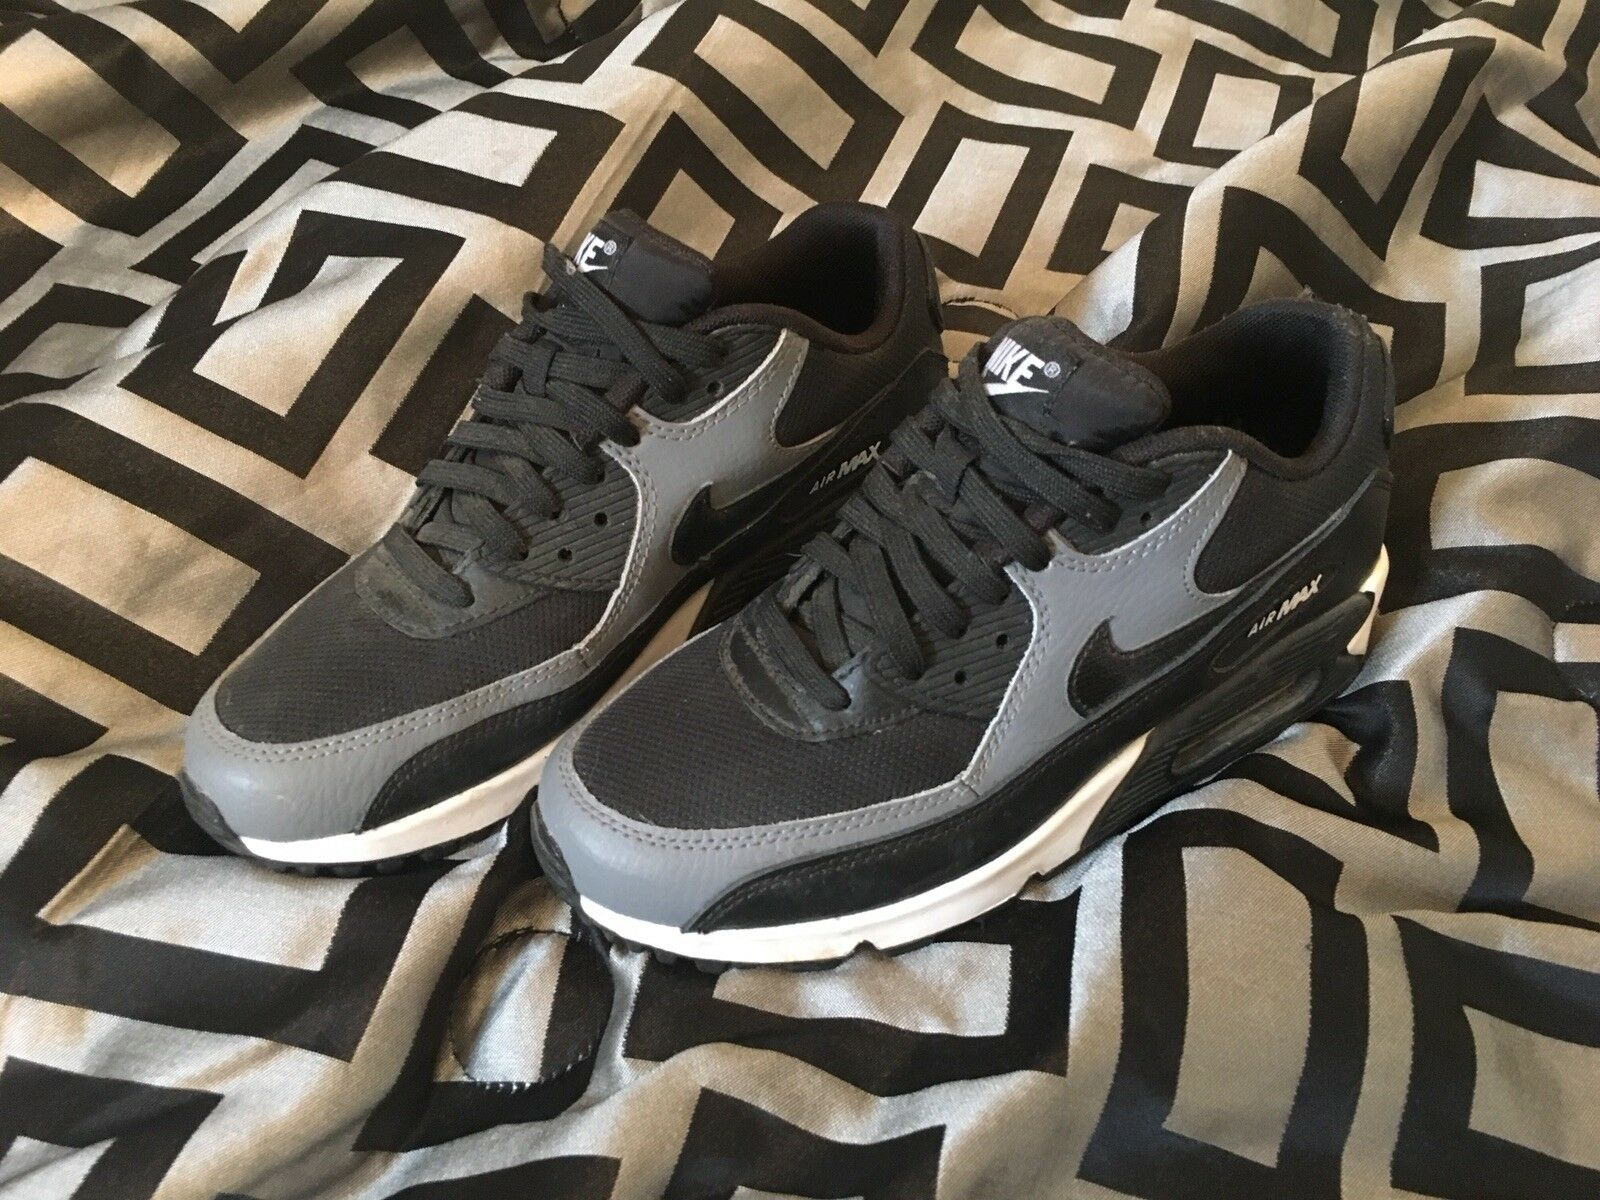 [325213-037] NIKE AIR MAX 90 BLACK GREY WOMENS SHOES Leather / Suede Sz 7